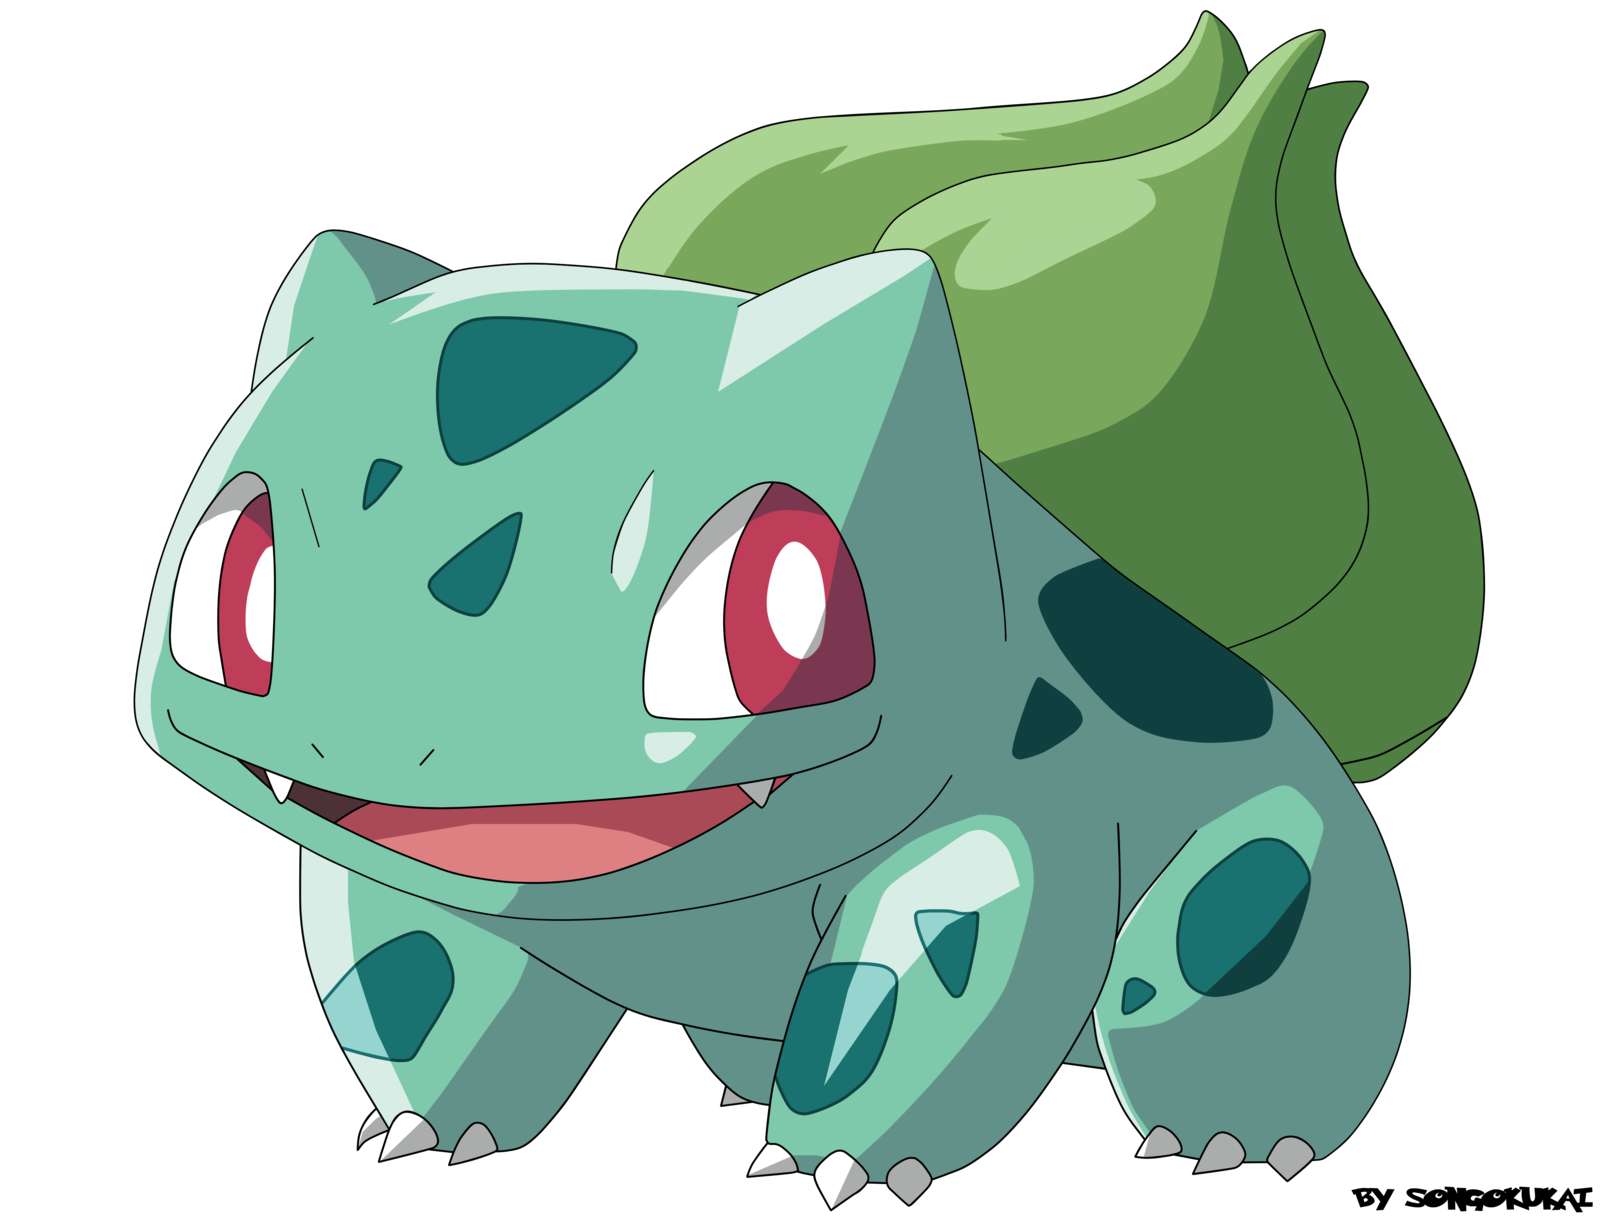 cute pokemon bulbasaur - photo #16